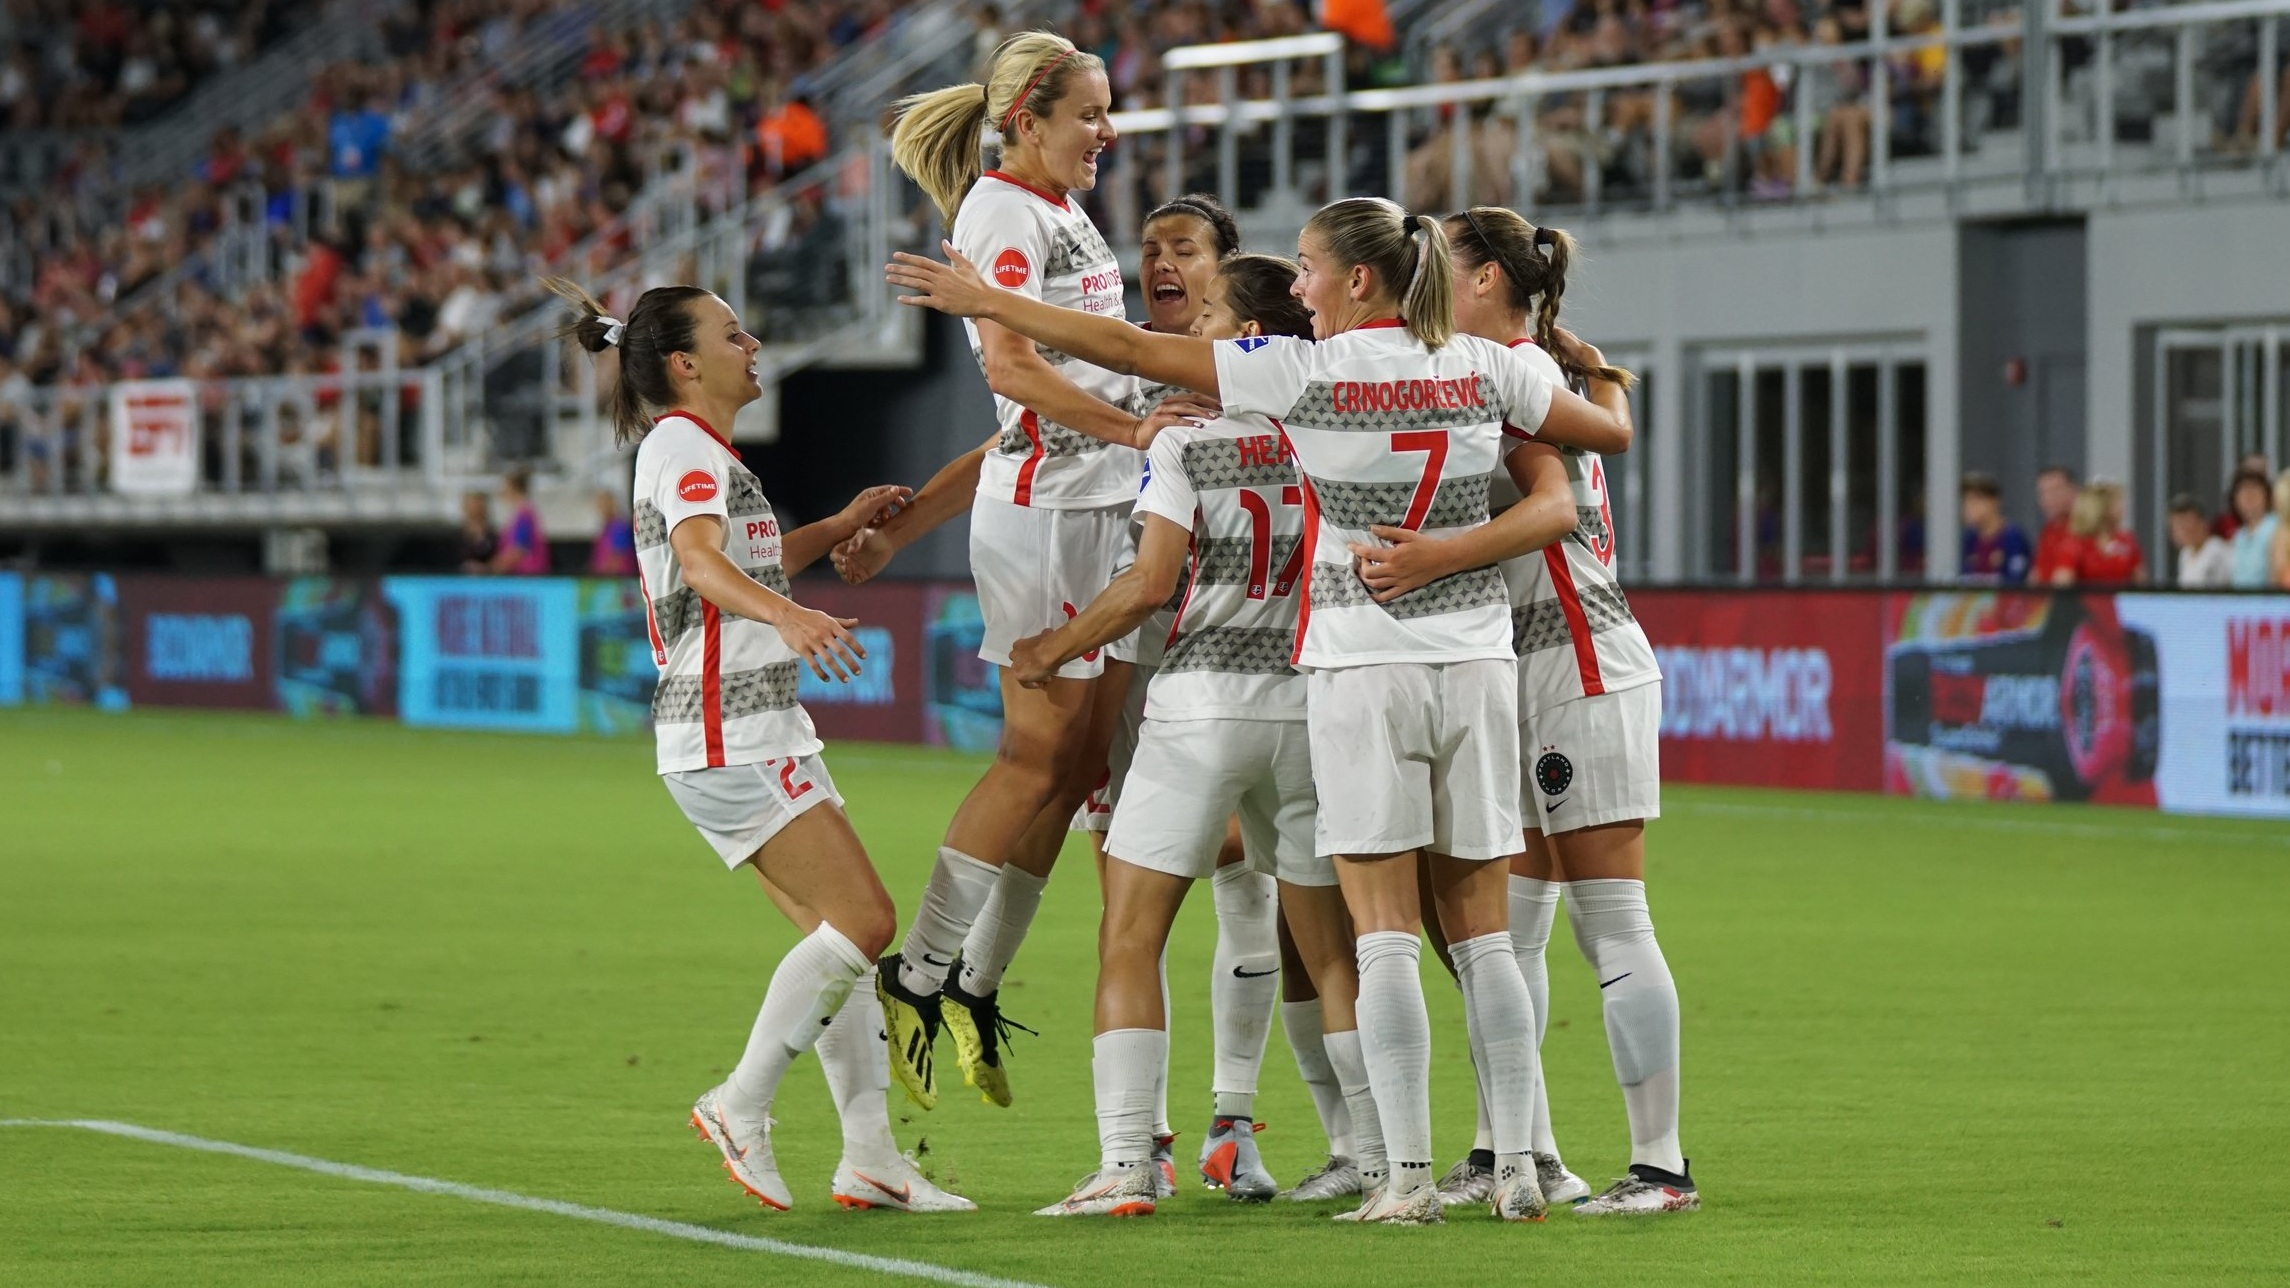 Sports - Or, What Women's Soccer Means to Me (spoiler: everything)